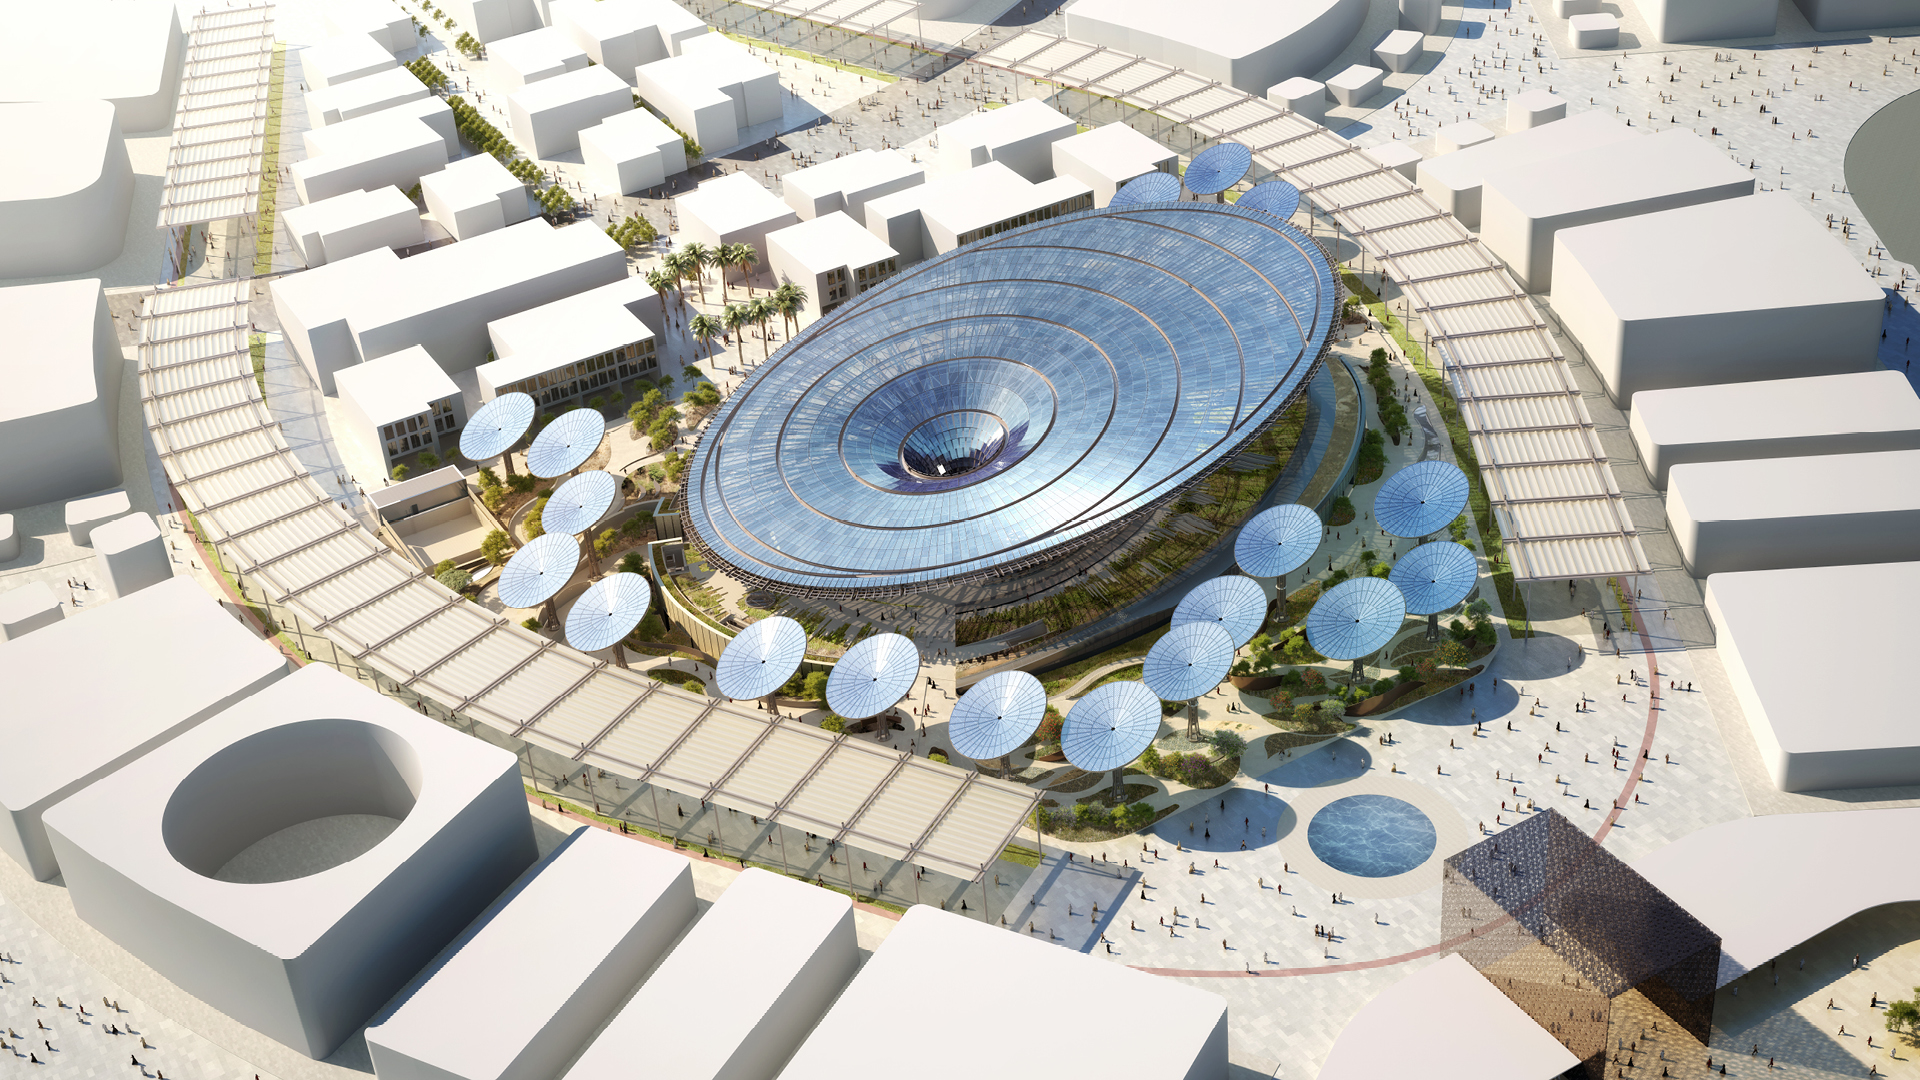 Sustainability Pavilion designed by Grimshaw Architects | Sustainability | Pavilion | Expo 2020| Dubai| STIRworld